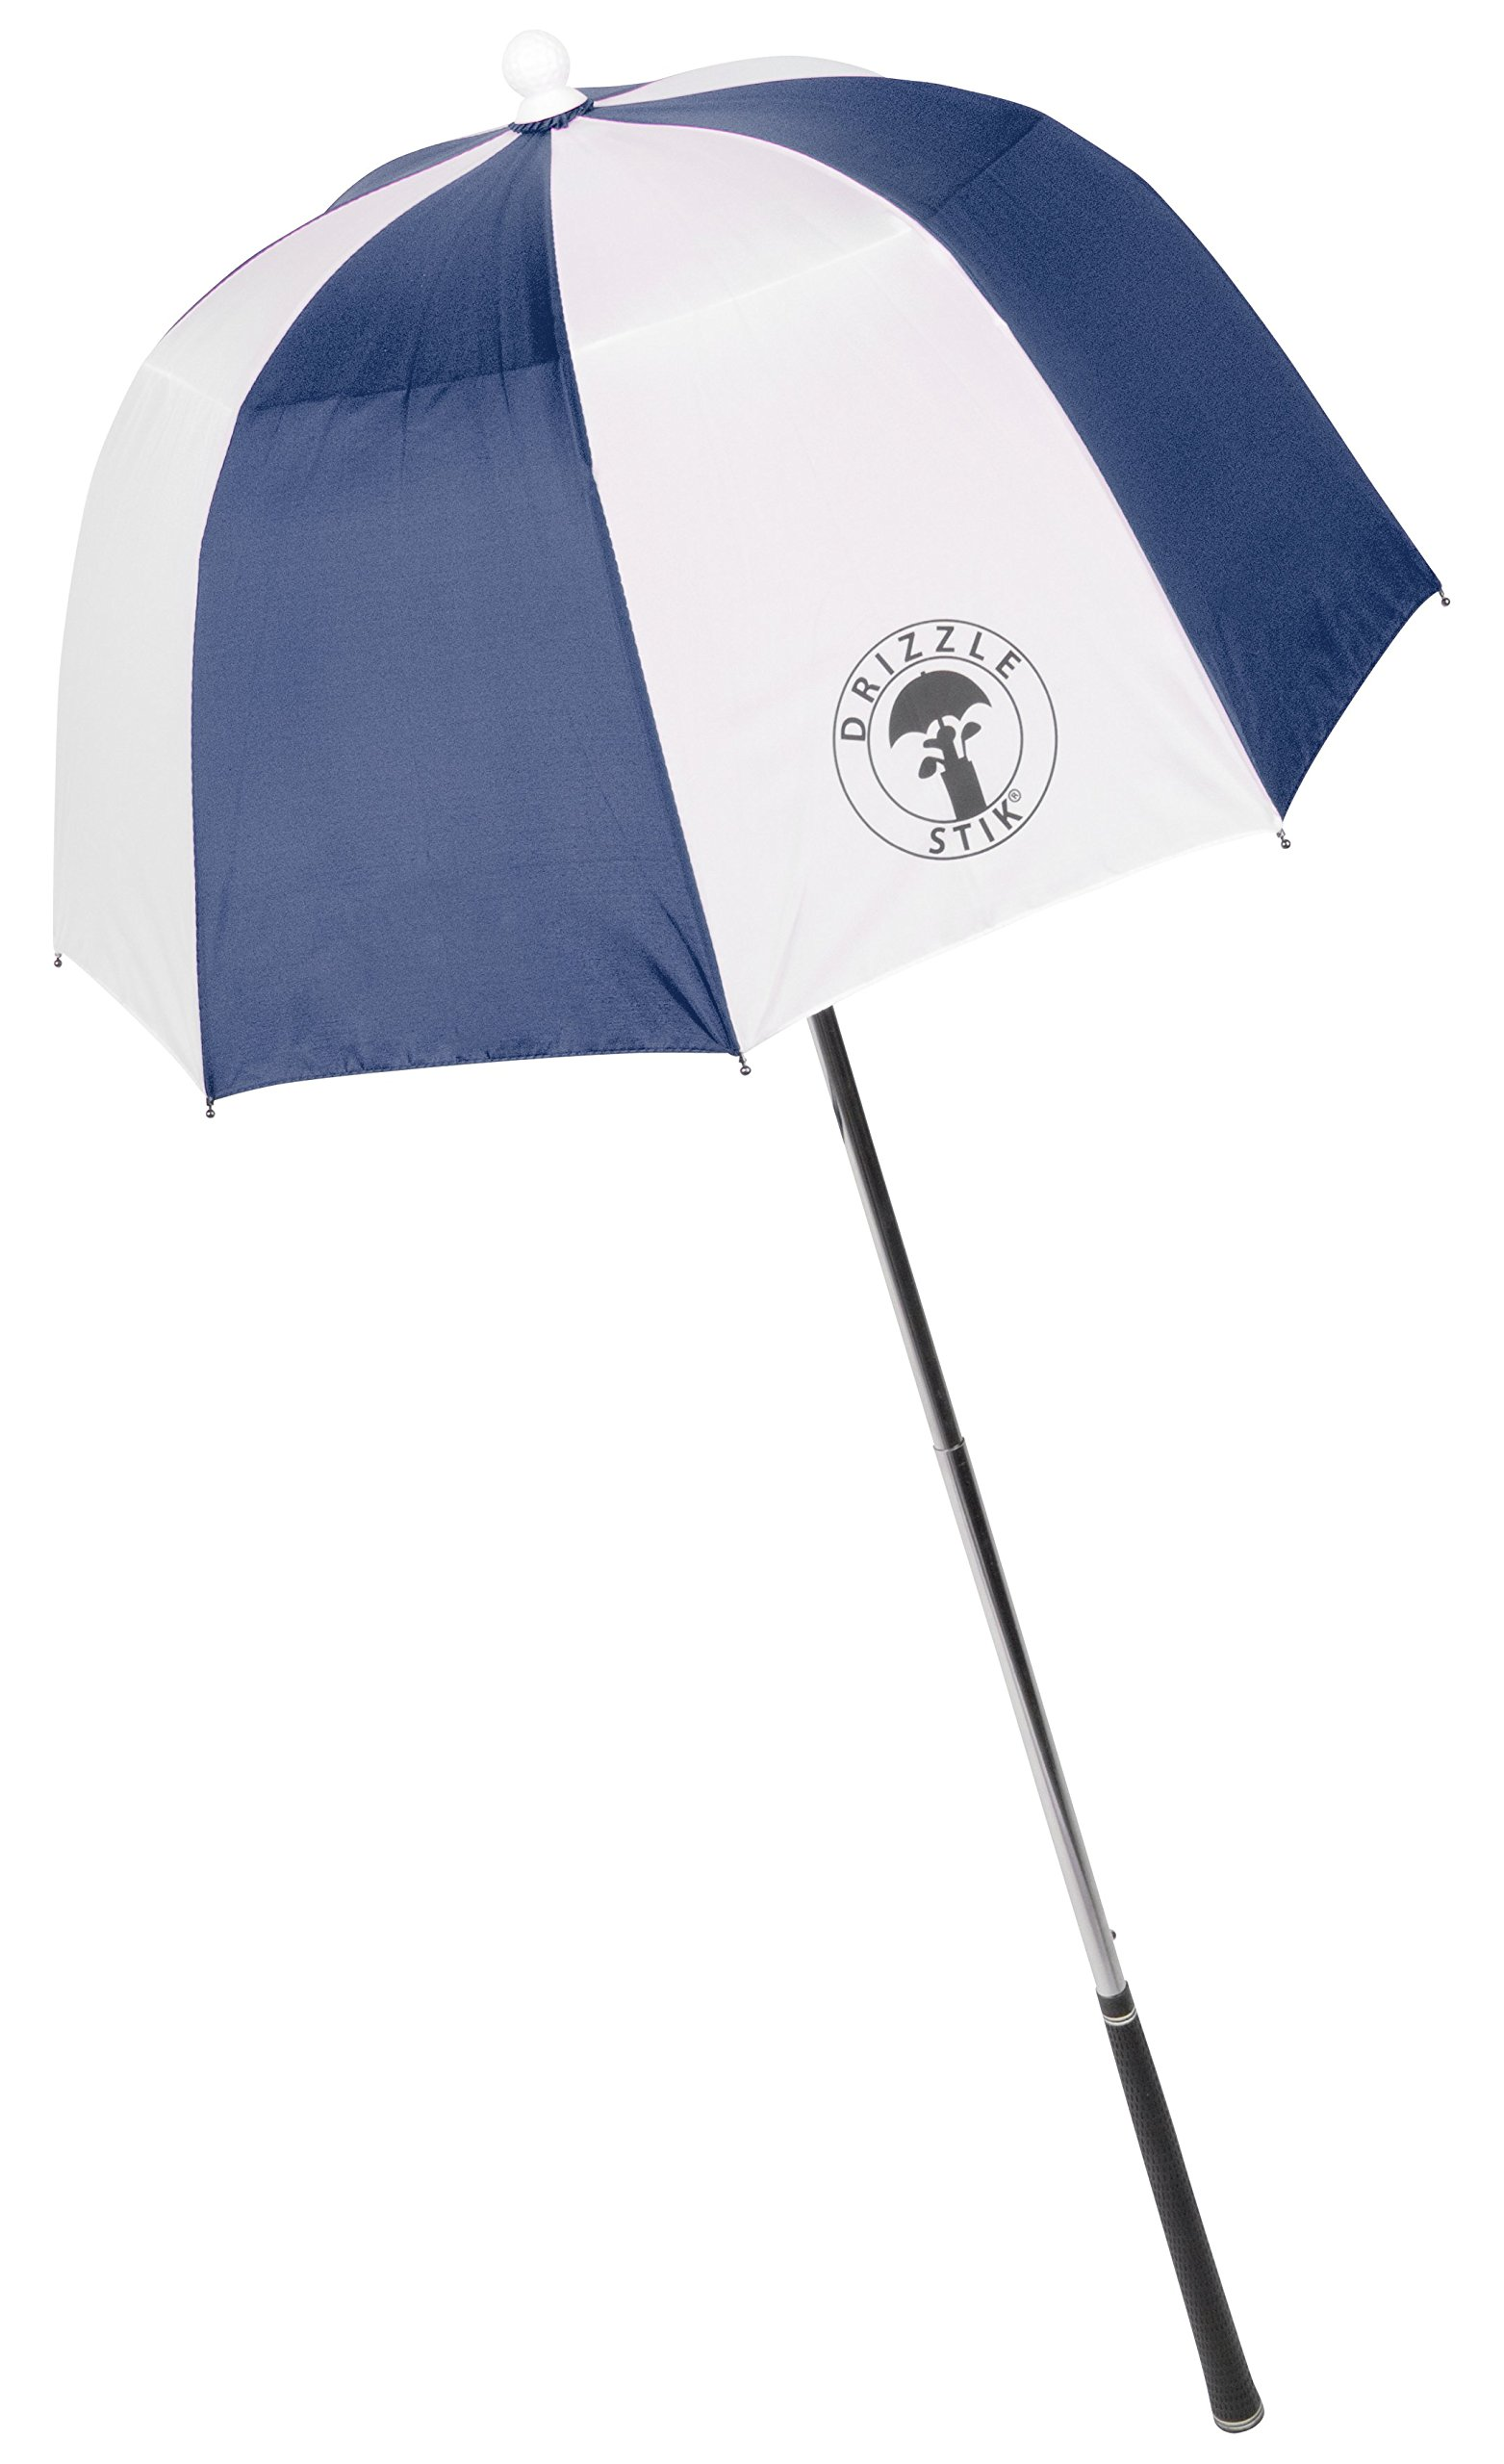 DrizzleStik Flex - Golf Club Umbrella (Navy/White) by Drizzle Stik